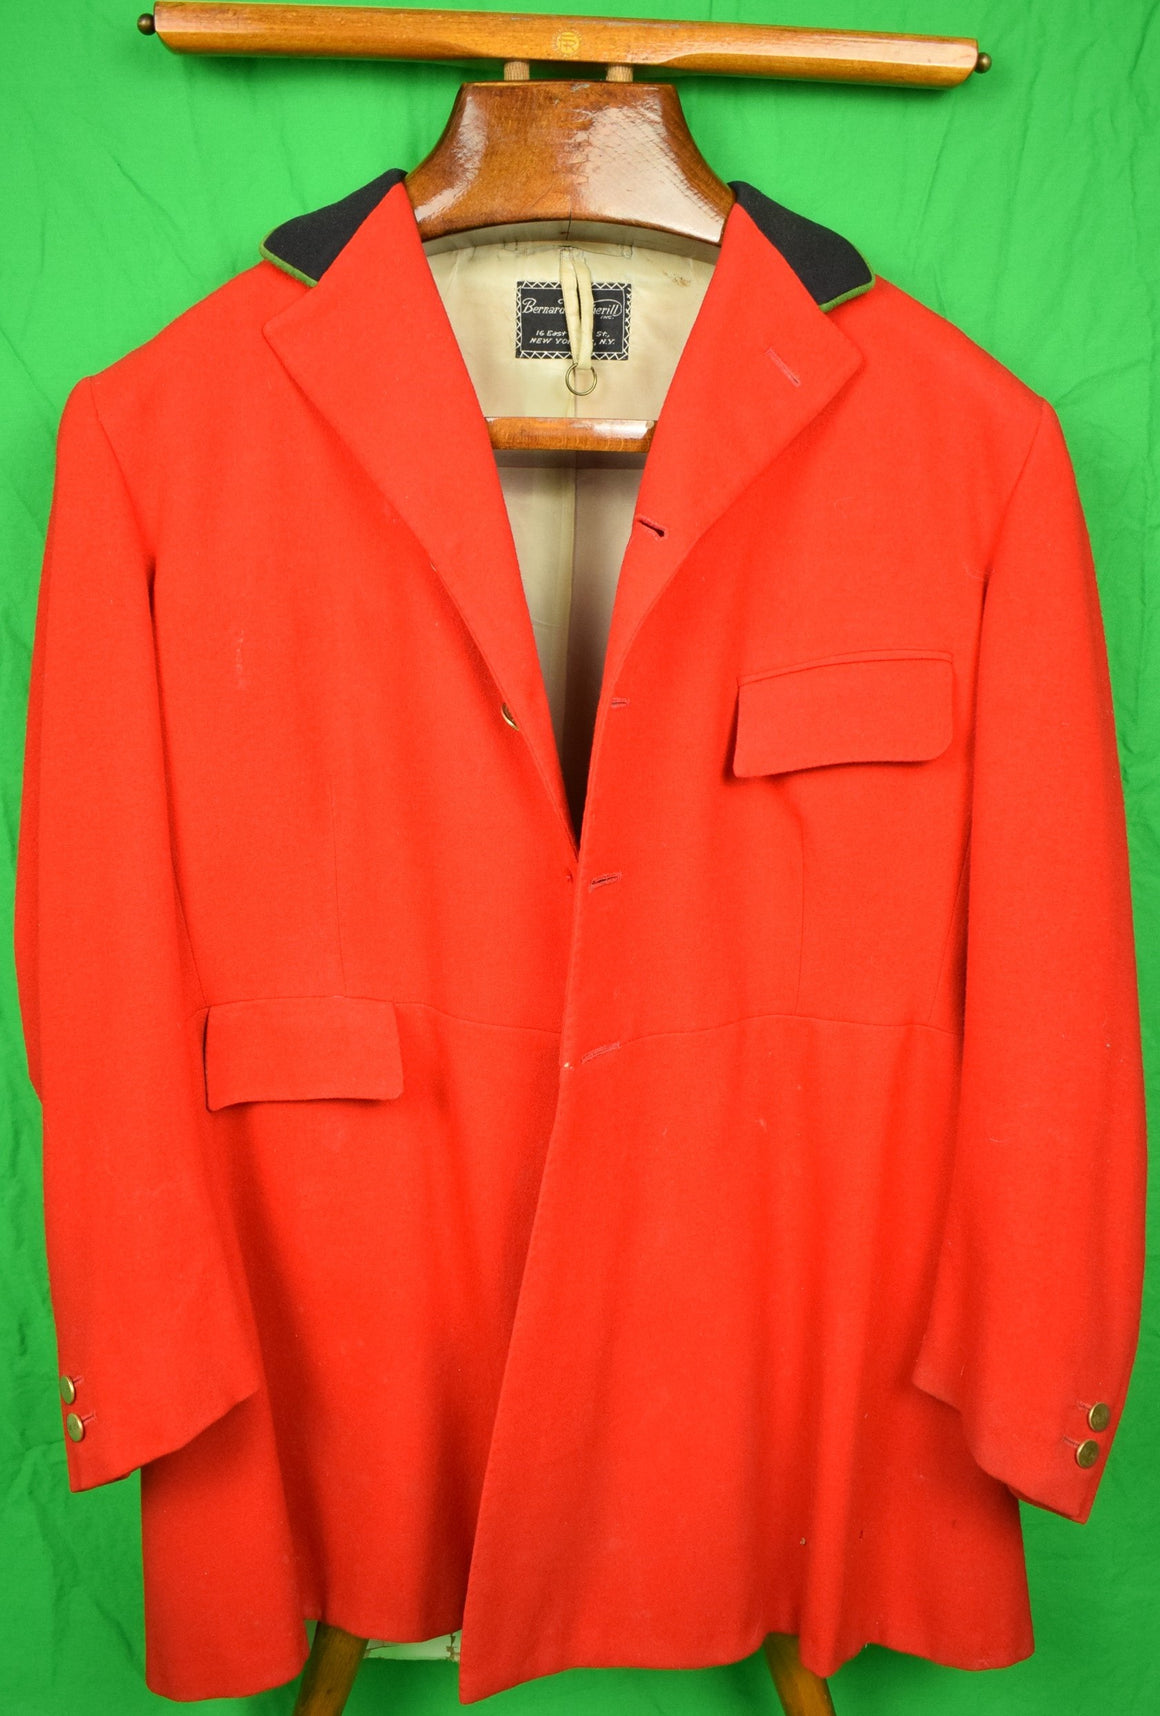 Bernard Weatherill c1974 Scarlet Millbrook Fox-Hunt Coat Sz 39R